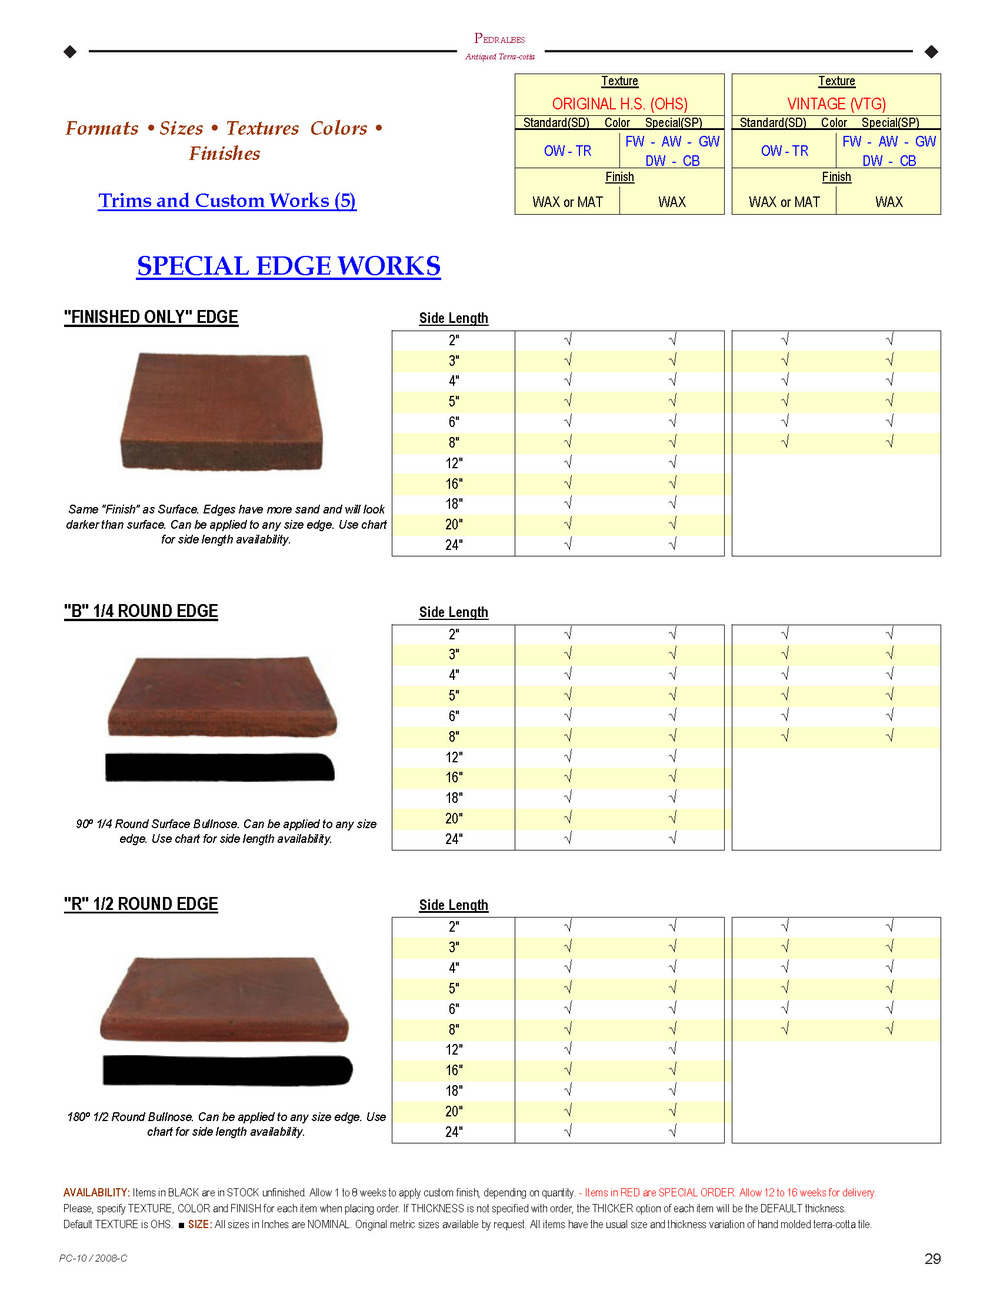 03-Formats+Sizes_Page_13.jpg